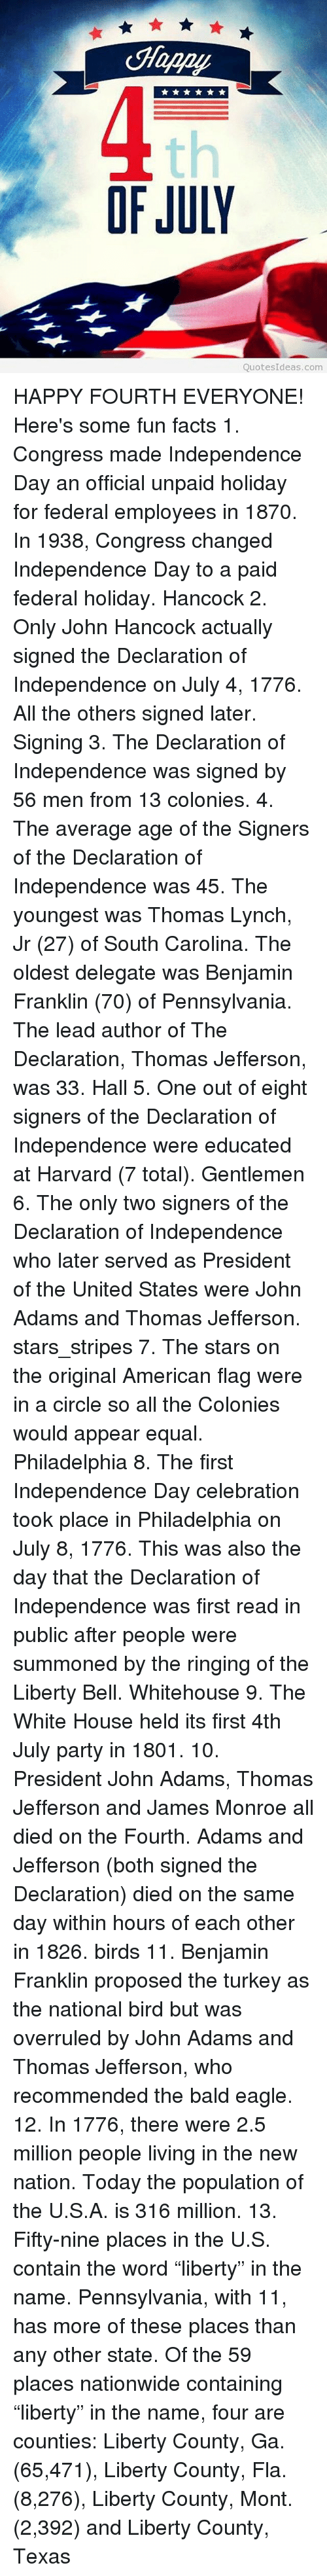 "Equalism: Happy  th  OF JULY  QuotesIdeas.com HAPPY FOURTH EVERYONE! Here's some fun facts 1. Congress made Independence Day an official unpaid holiday for federal employees in 1870. In 1938, Congress changed Independence Day to a paid federal holiday. Hancock 2. Only John Hancock actually signed the Declaration of Independence on July 4, 1776. All the others signed later. Signing 3. The Declaration of Independence was signed by 56 men from 13 colonies. 4. The average age of the Signers of the Declaration of Independence was 45. The youngest was Thomas Lynch, Jr (27) of South Carolina. The oldest delegate was Benjamin Franklin (70) of Pennsylvania. The lead author of The Declaration, Thomas Jefferson, was 33. Hall 5. One out of eight signers of the Declaration of Independence were educated at Harvard (7 total). Gentlemen 6. The only two signers of the Declaration of Independence who later served as President of the United States were John Adams and Thomas Jefferson. stars_stripes 7. The stars on the original American flag were in a circle so all the Colonies would appear equal. Philadelphia 8. The first Independence Day celebration took place in Philadelphia on July 8, 1776. This was also the day that the Declaration of Independence was first read in public after people were summoned by the ringing of the Liberty Bell. Whitehouse 9. The White House held its first 4th July party in 1801. 10. President John Adams, Thomas Jefferson and James Monroe all died on the Fourth. Adams and Jefferson (both signed the Declaration) died on the same day within hours of each other in 1826. birds 11. Benjamin Franklin proposed the turkey as the national bird but was overruled by John Adams and Thomas Jefferson, who recommended the bald eagle. 12. In 1776, there were 2.5 million people living in the new nation. Today the population of the U.S.A. is 316 million. 13. Fifty-nine places in the U.S. contain the word ""liberty"" in the name. Pennsylvania, with 11, has more of these places than any other state. Of the 59 places nationwide containing ""liberty"" in the name, four are counties: Liberty County, Ga. (65,471), Liberty County, Fla. (8,276), Liberty County, Mont. (2,392) and Liberty County, Texas"